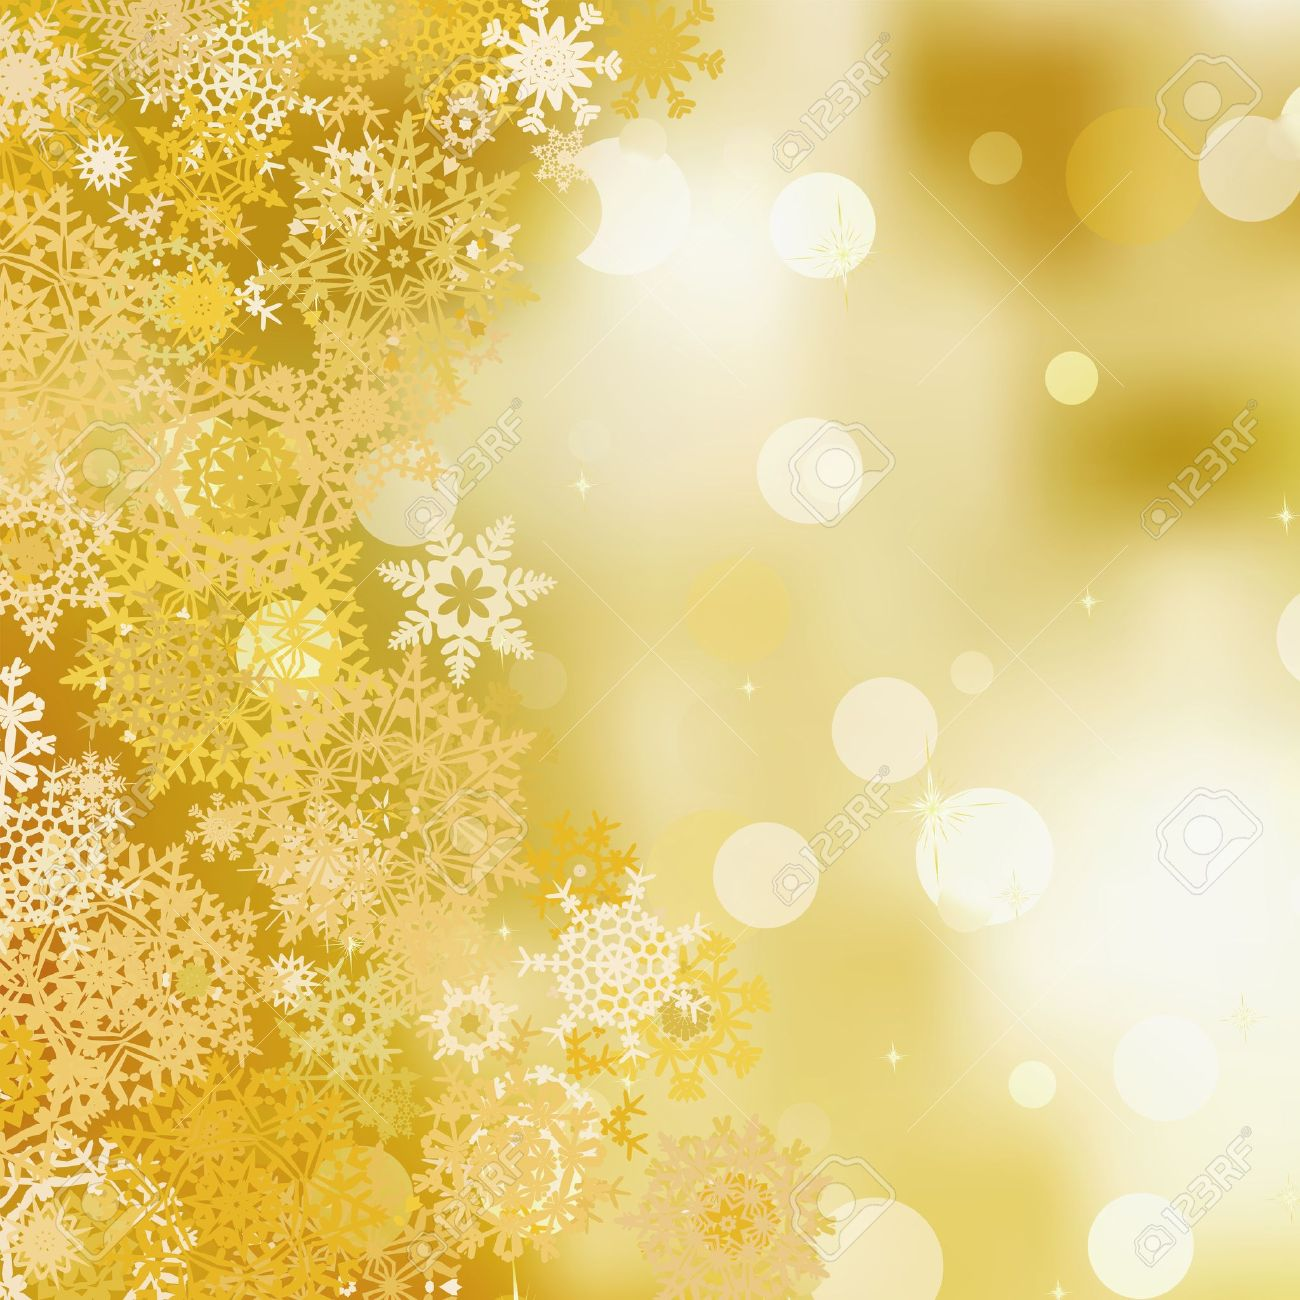 Christmas Background Images Gold.Golden Christmas Background